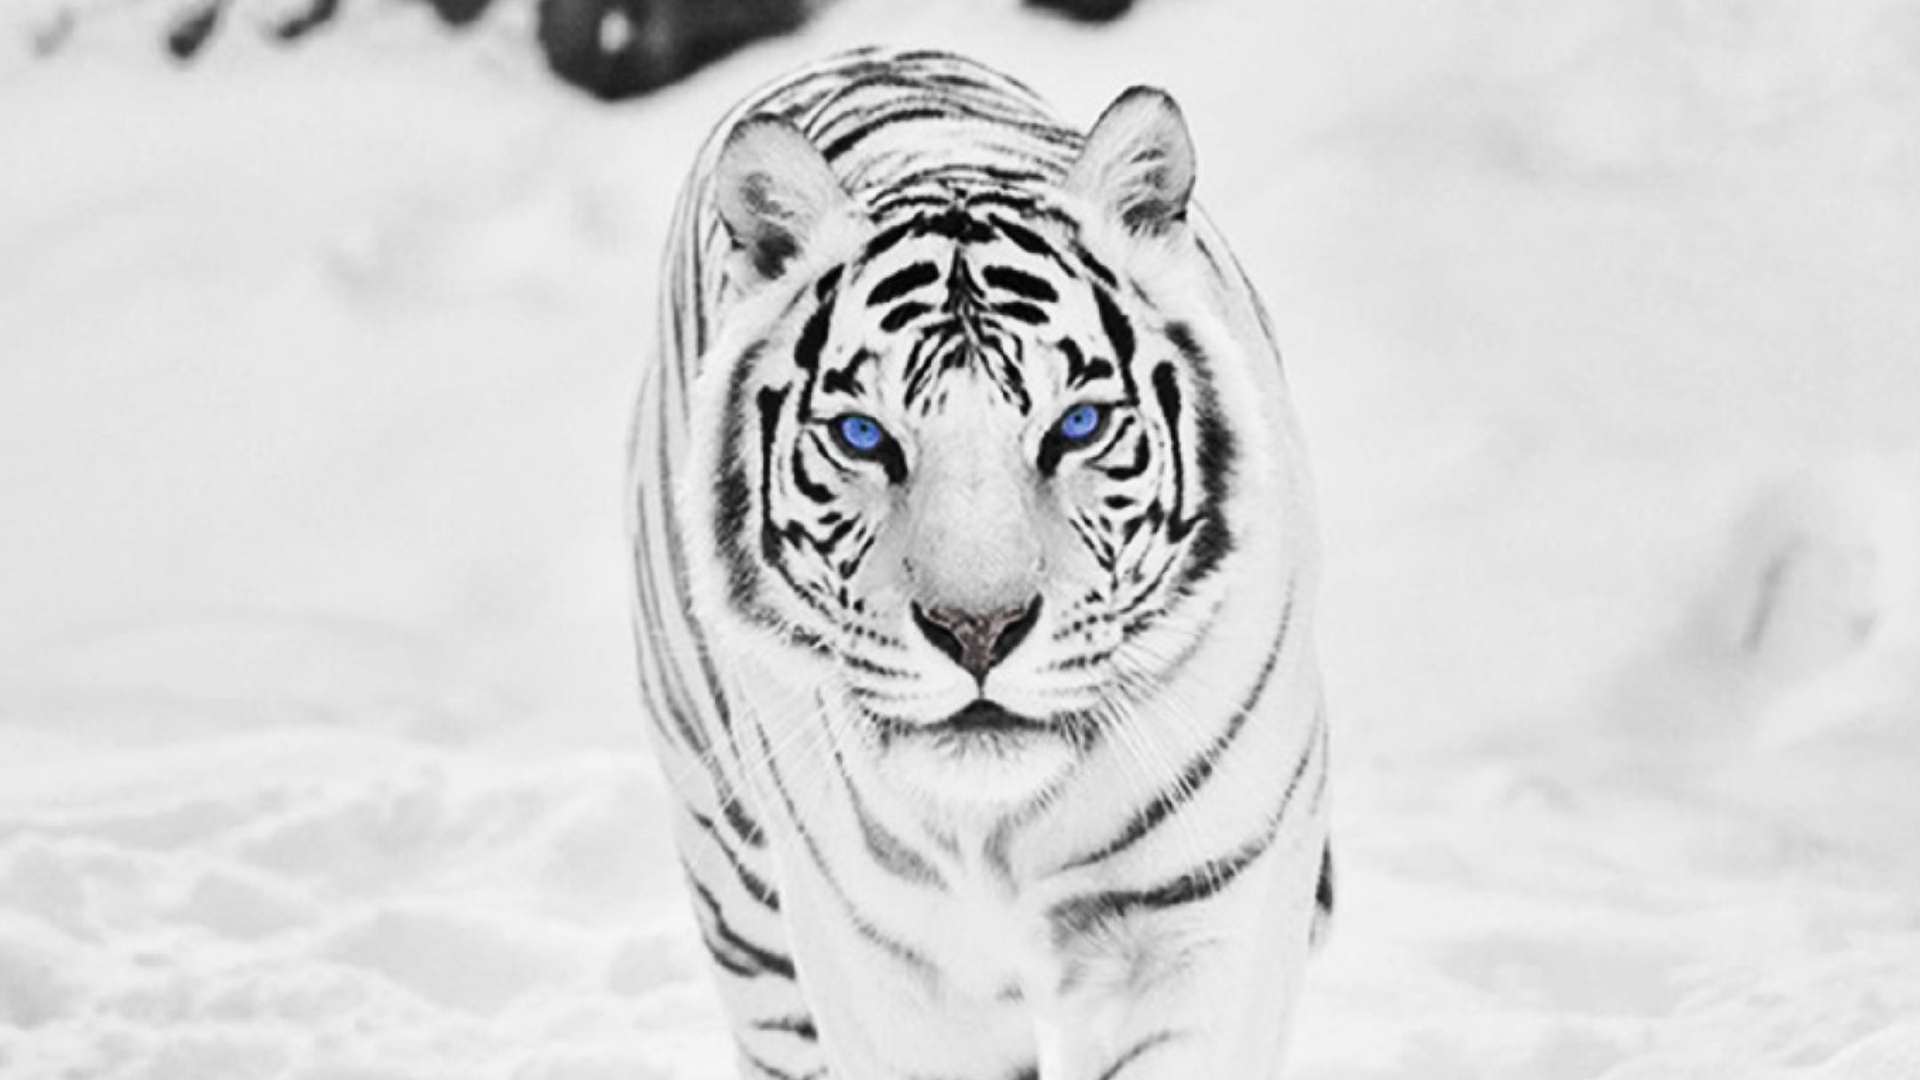 white tiger wallpapers images photos pictures backgrounds. Black Bedroom Furniture Sets. Home Design Ideas